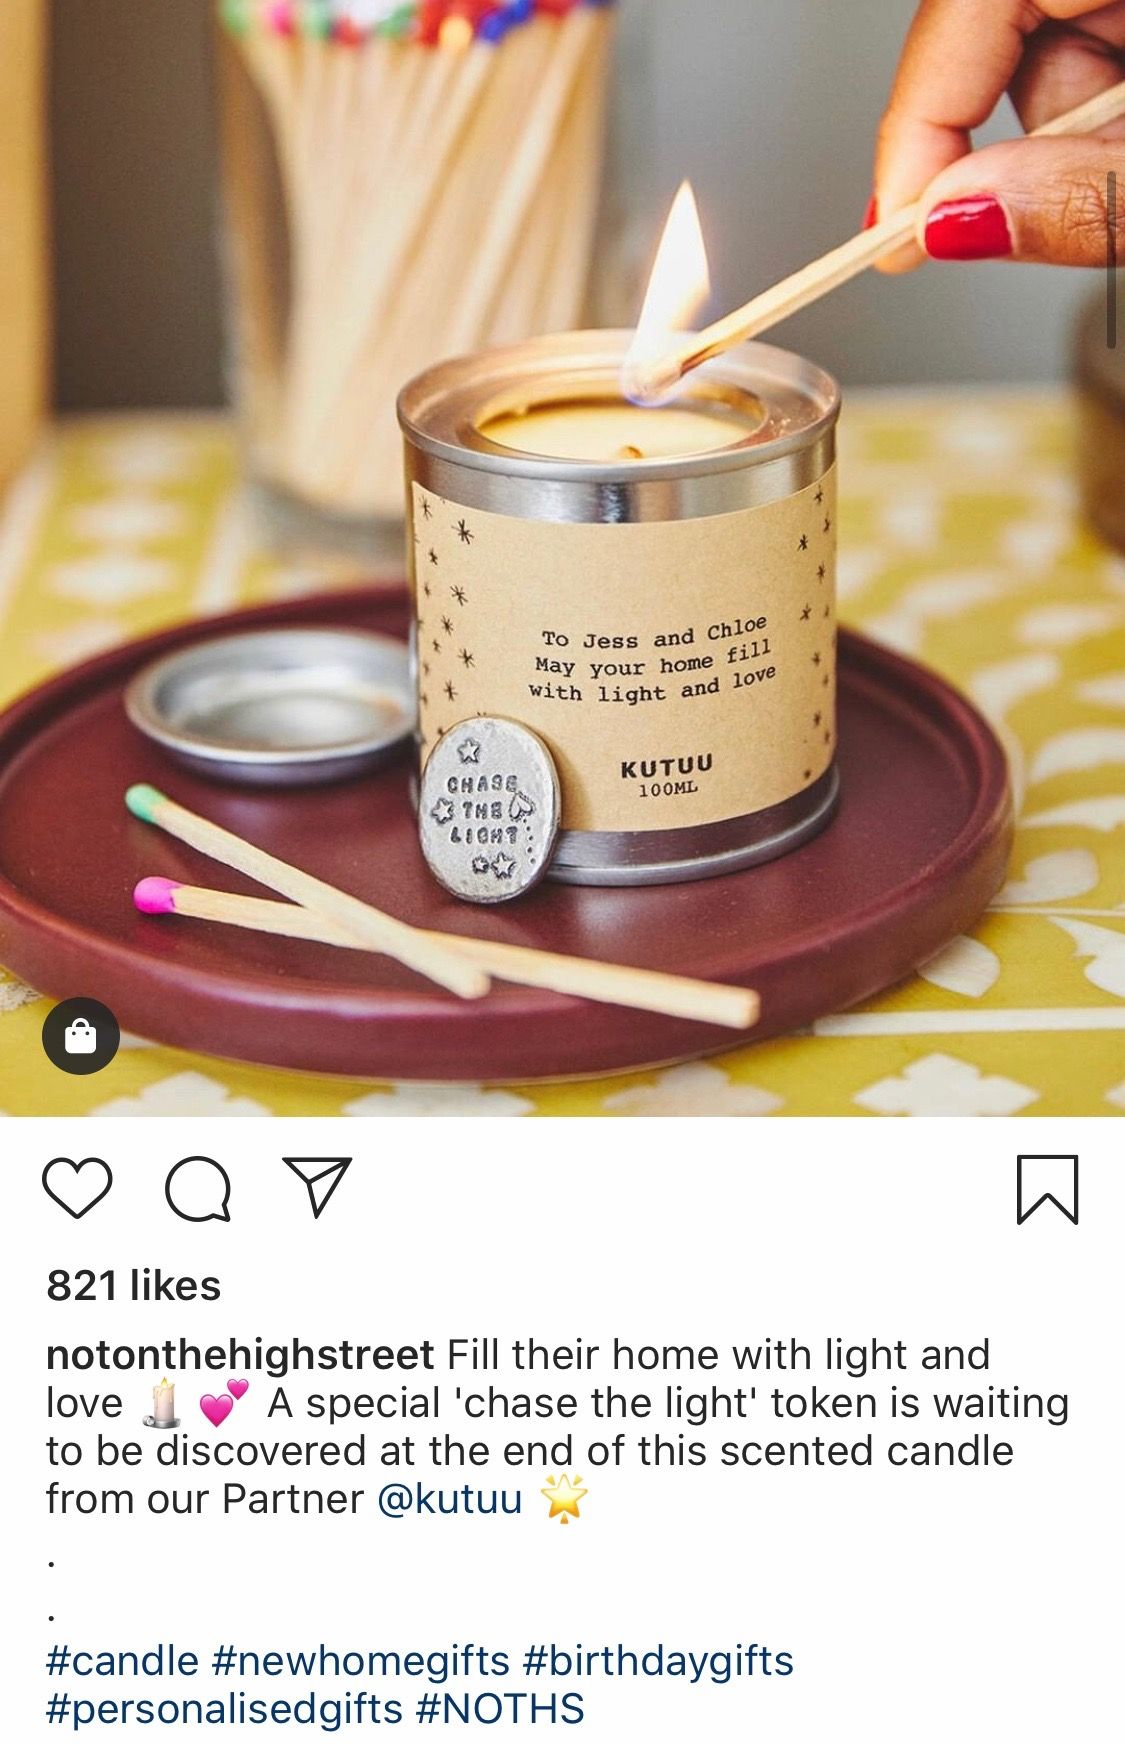 @notonthehighstreet Instagram post featuring the hashtag #NOTHS